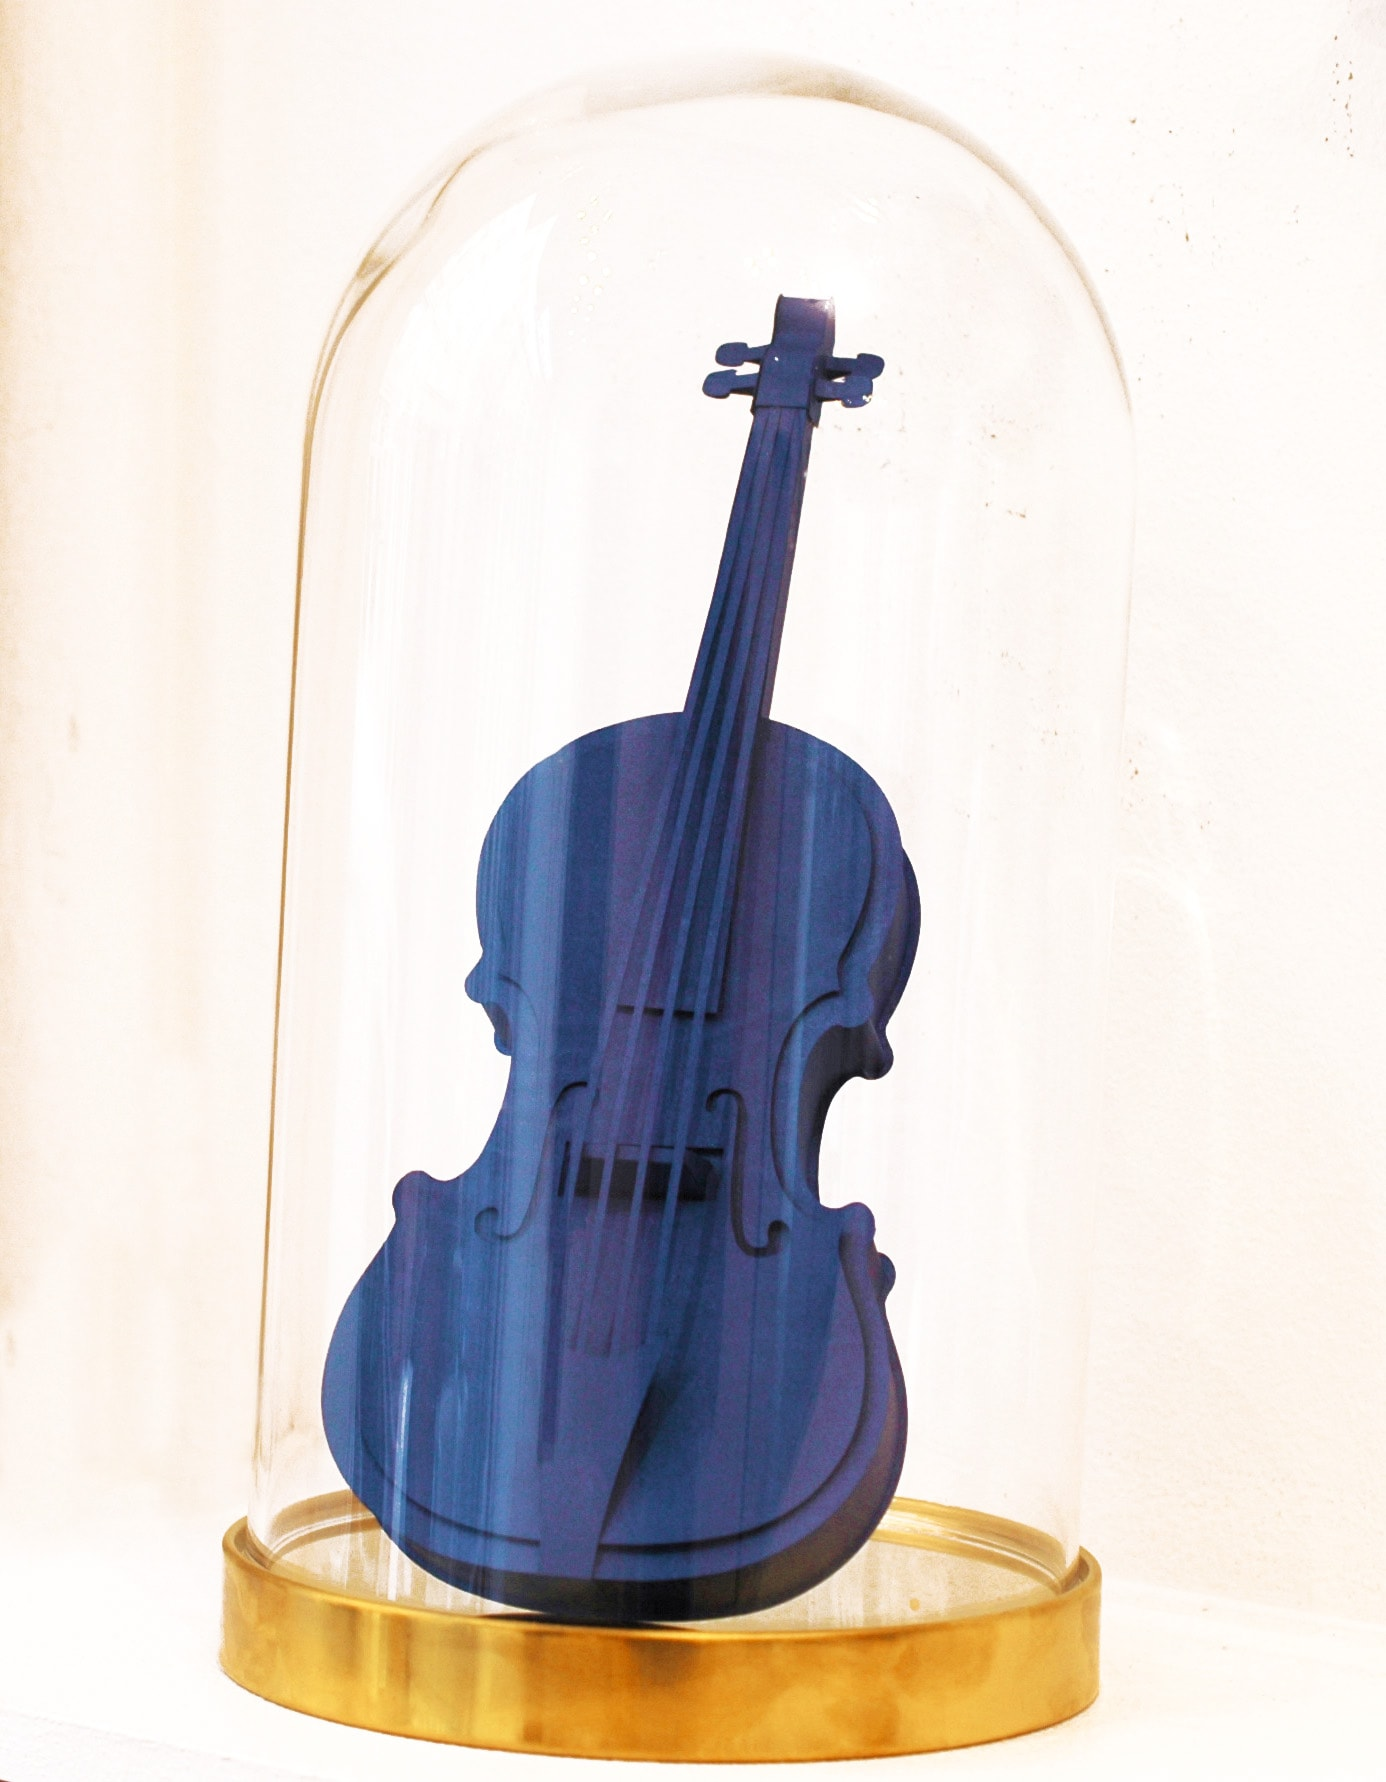 Galerie Art Jingle Maud VANTOURS Violon Bleu 25 x 9.5 cm 2021